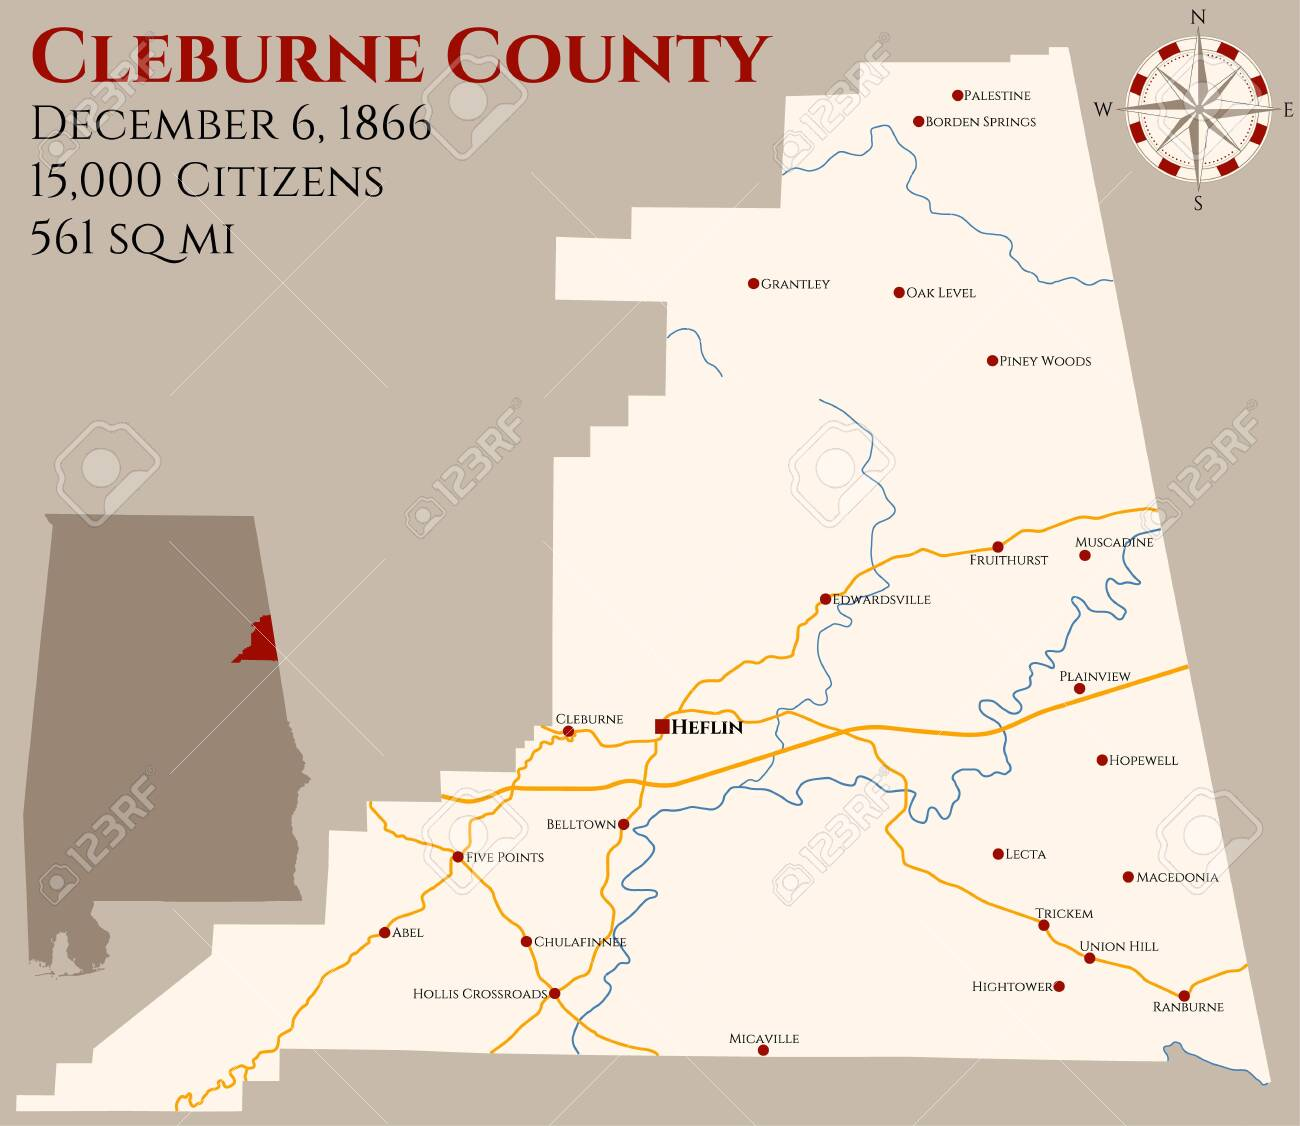 Large and detailed map of Cleburne County in Alabama, USA on map of nevada usa, map of georgia usa, map of st. vincent and the grenadines, map of america usa, map of san antonio usa, map of northeastern usa, map of northwestern usa, map of midwest states usa, map of southern usa, map of the south usa, map of carolinas usa, map delaware usa, map arkansas usa, map of washington dc usa, map of richmond usa, map of mexico usa, map of southeast usa, map of boston usa, colorado map usa, map of pacific northwest usa,